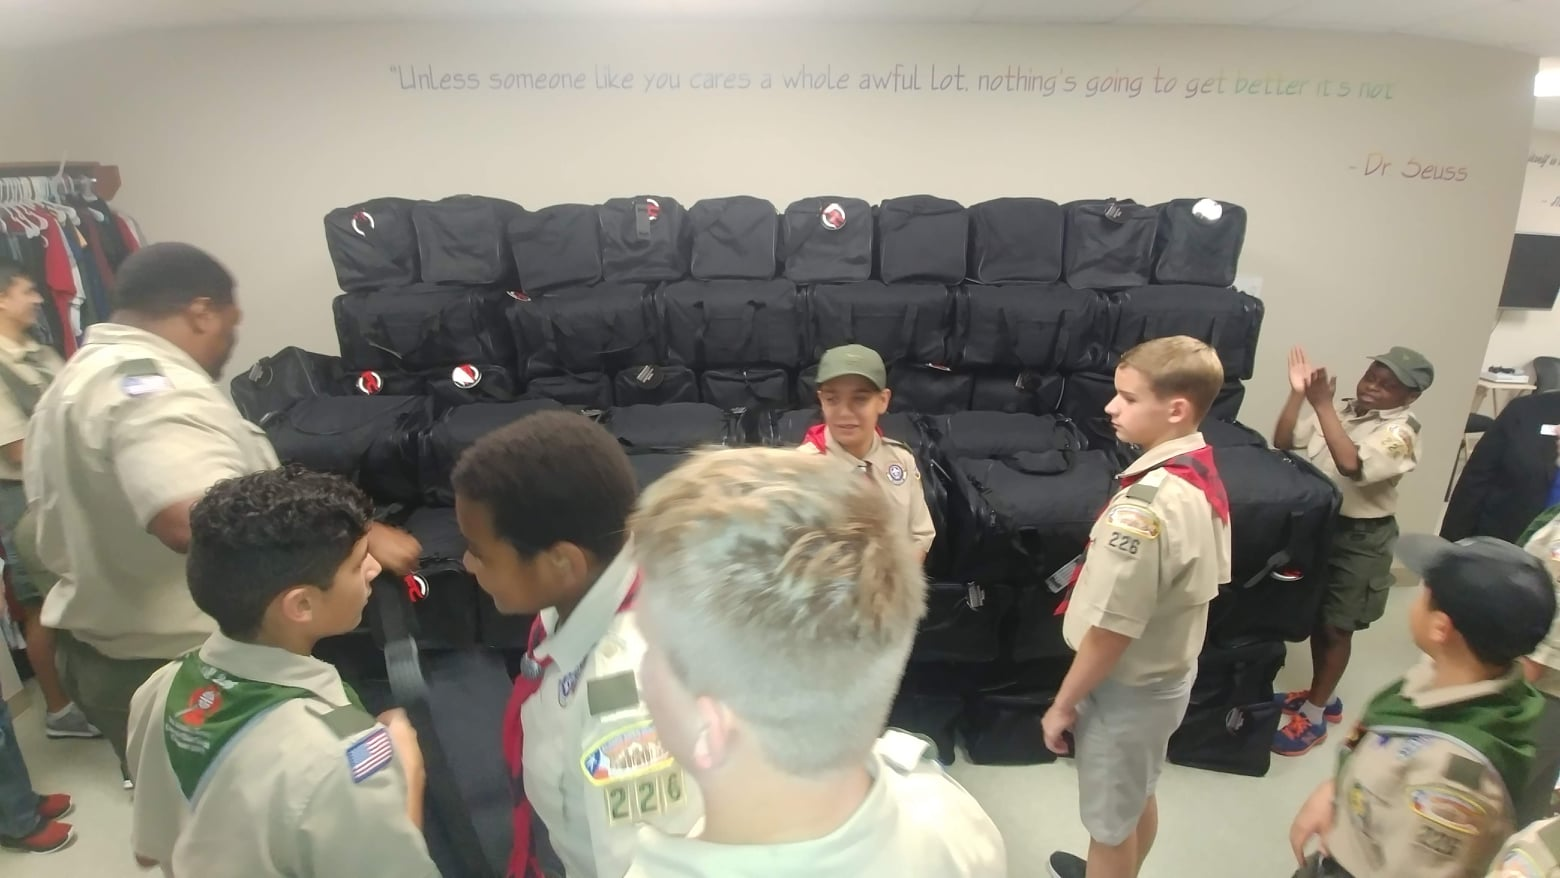 roy-maas-eagle-scout-day-1-bags-donation-3.jpg